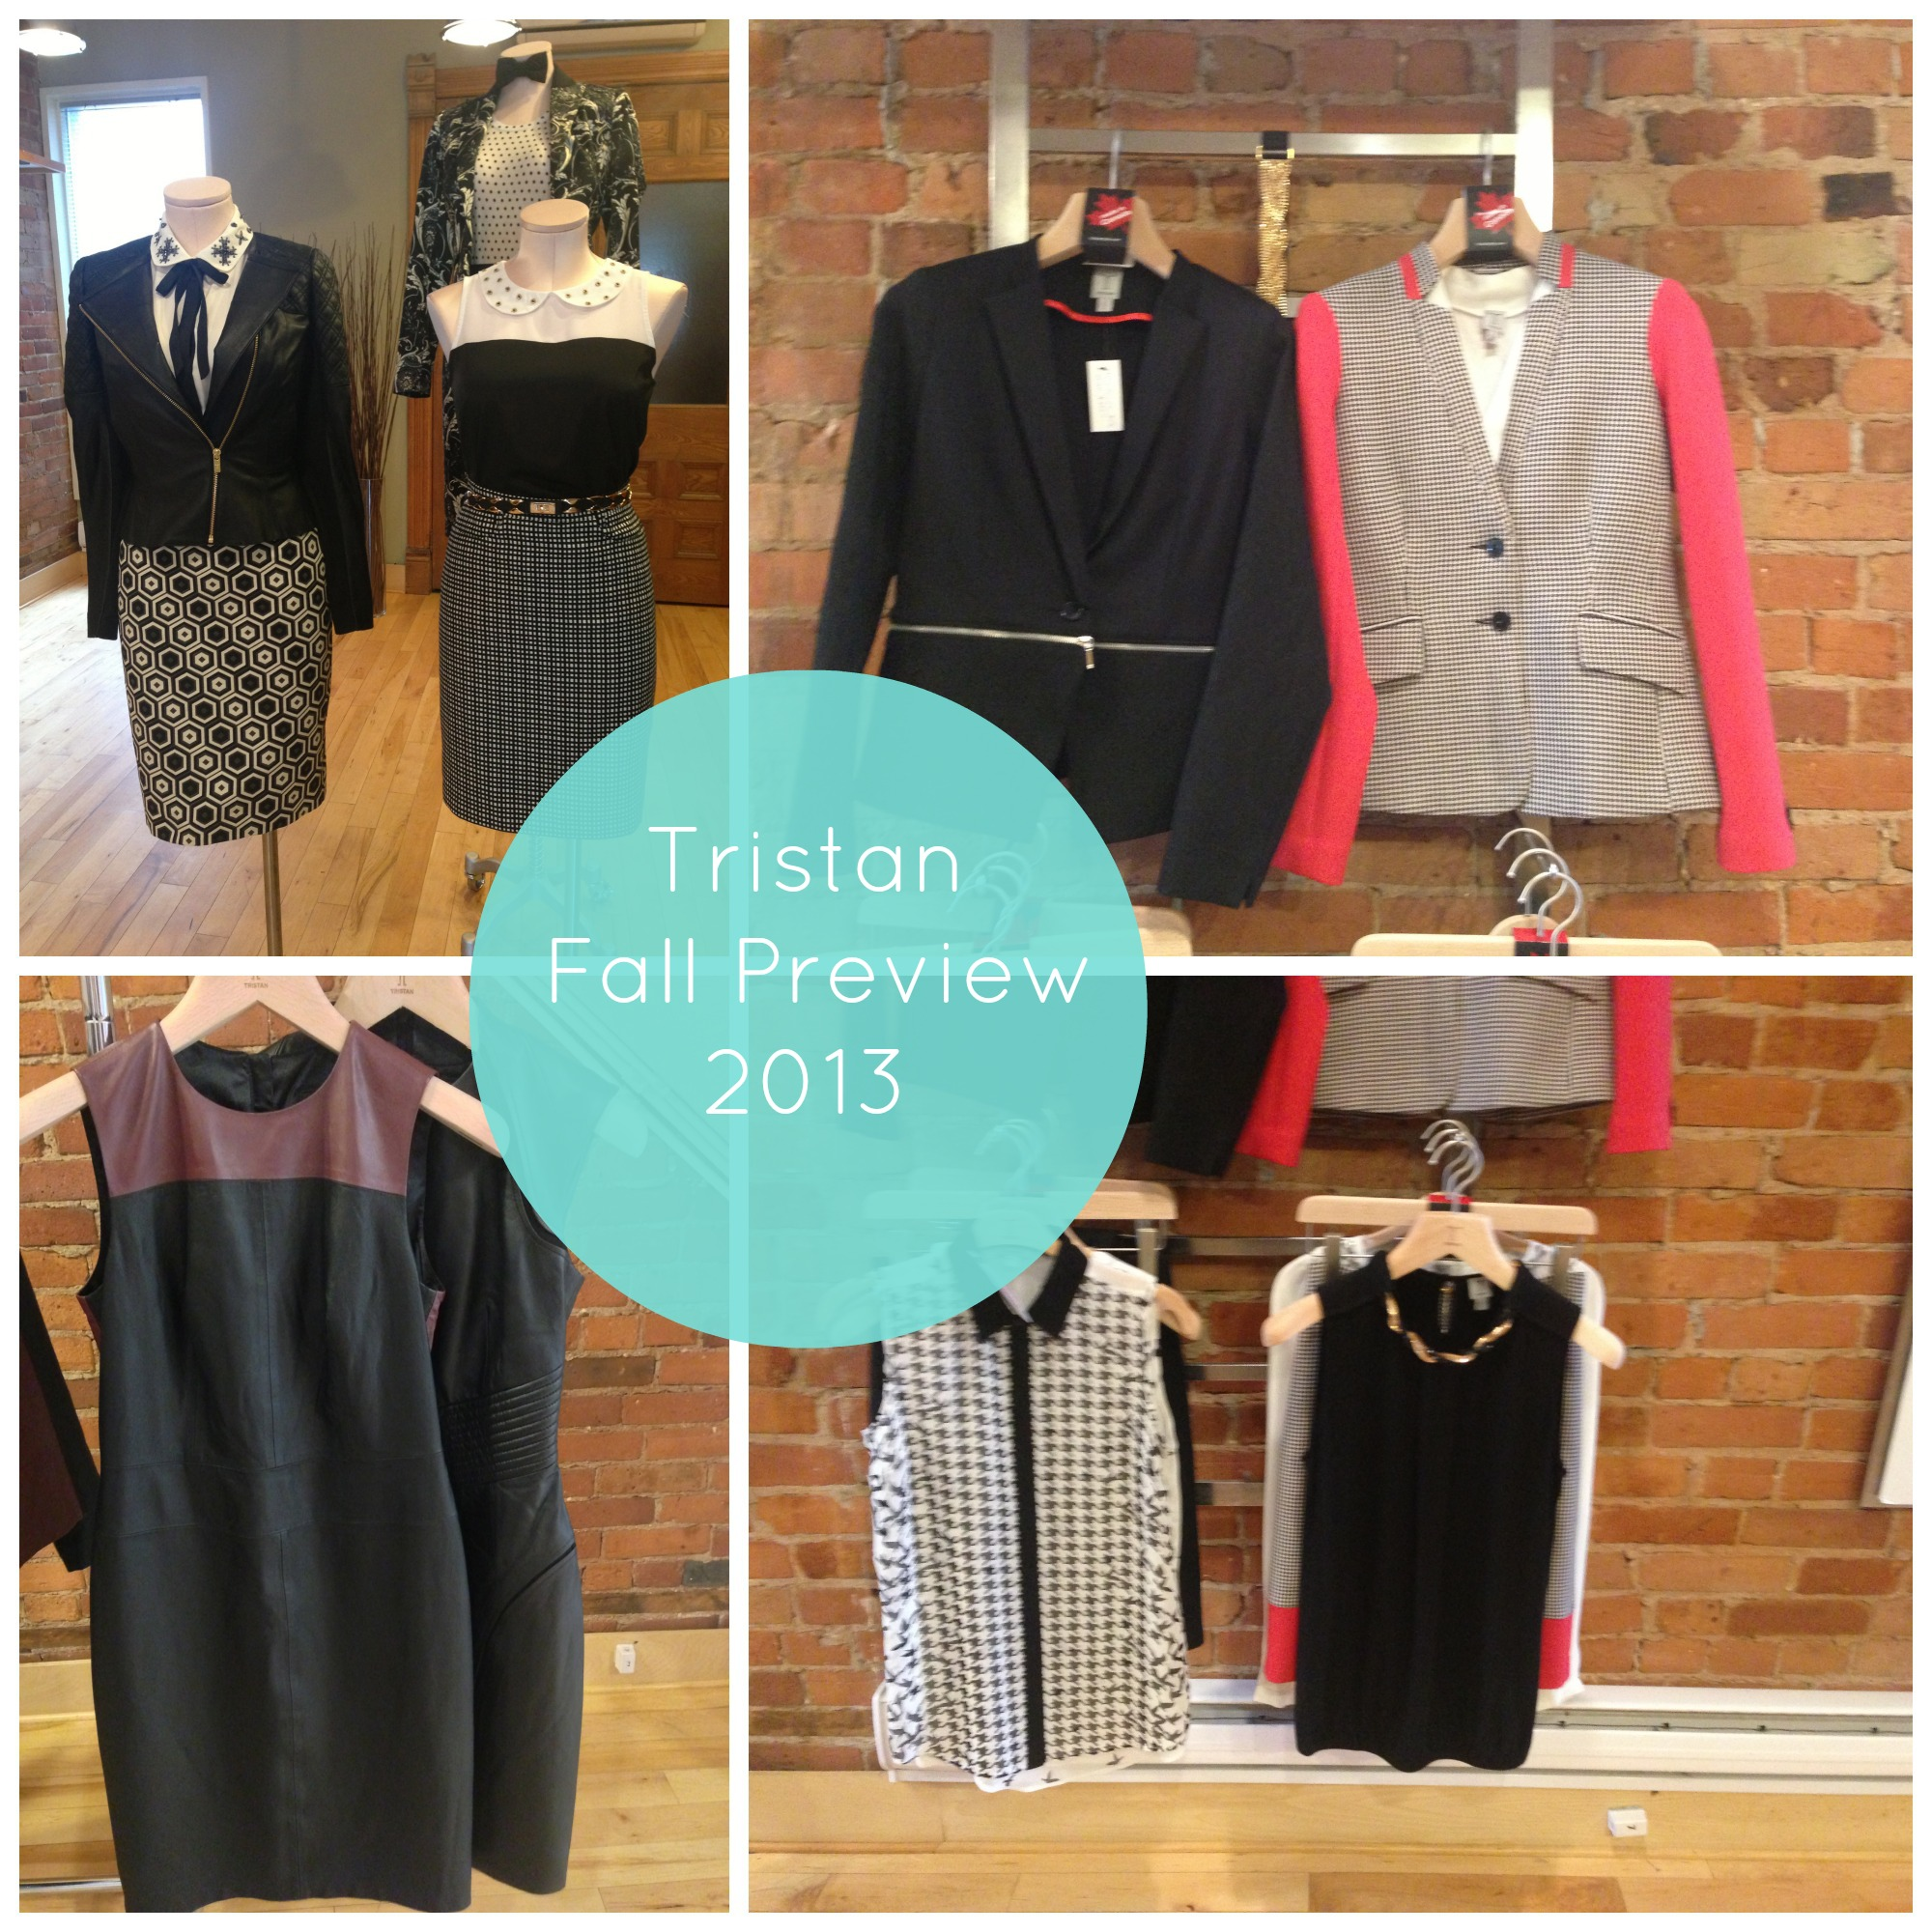 Tristan Fall / winter Preview